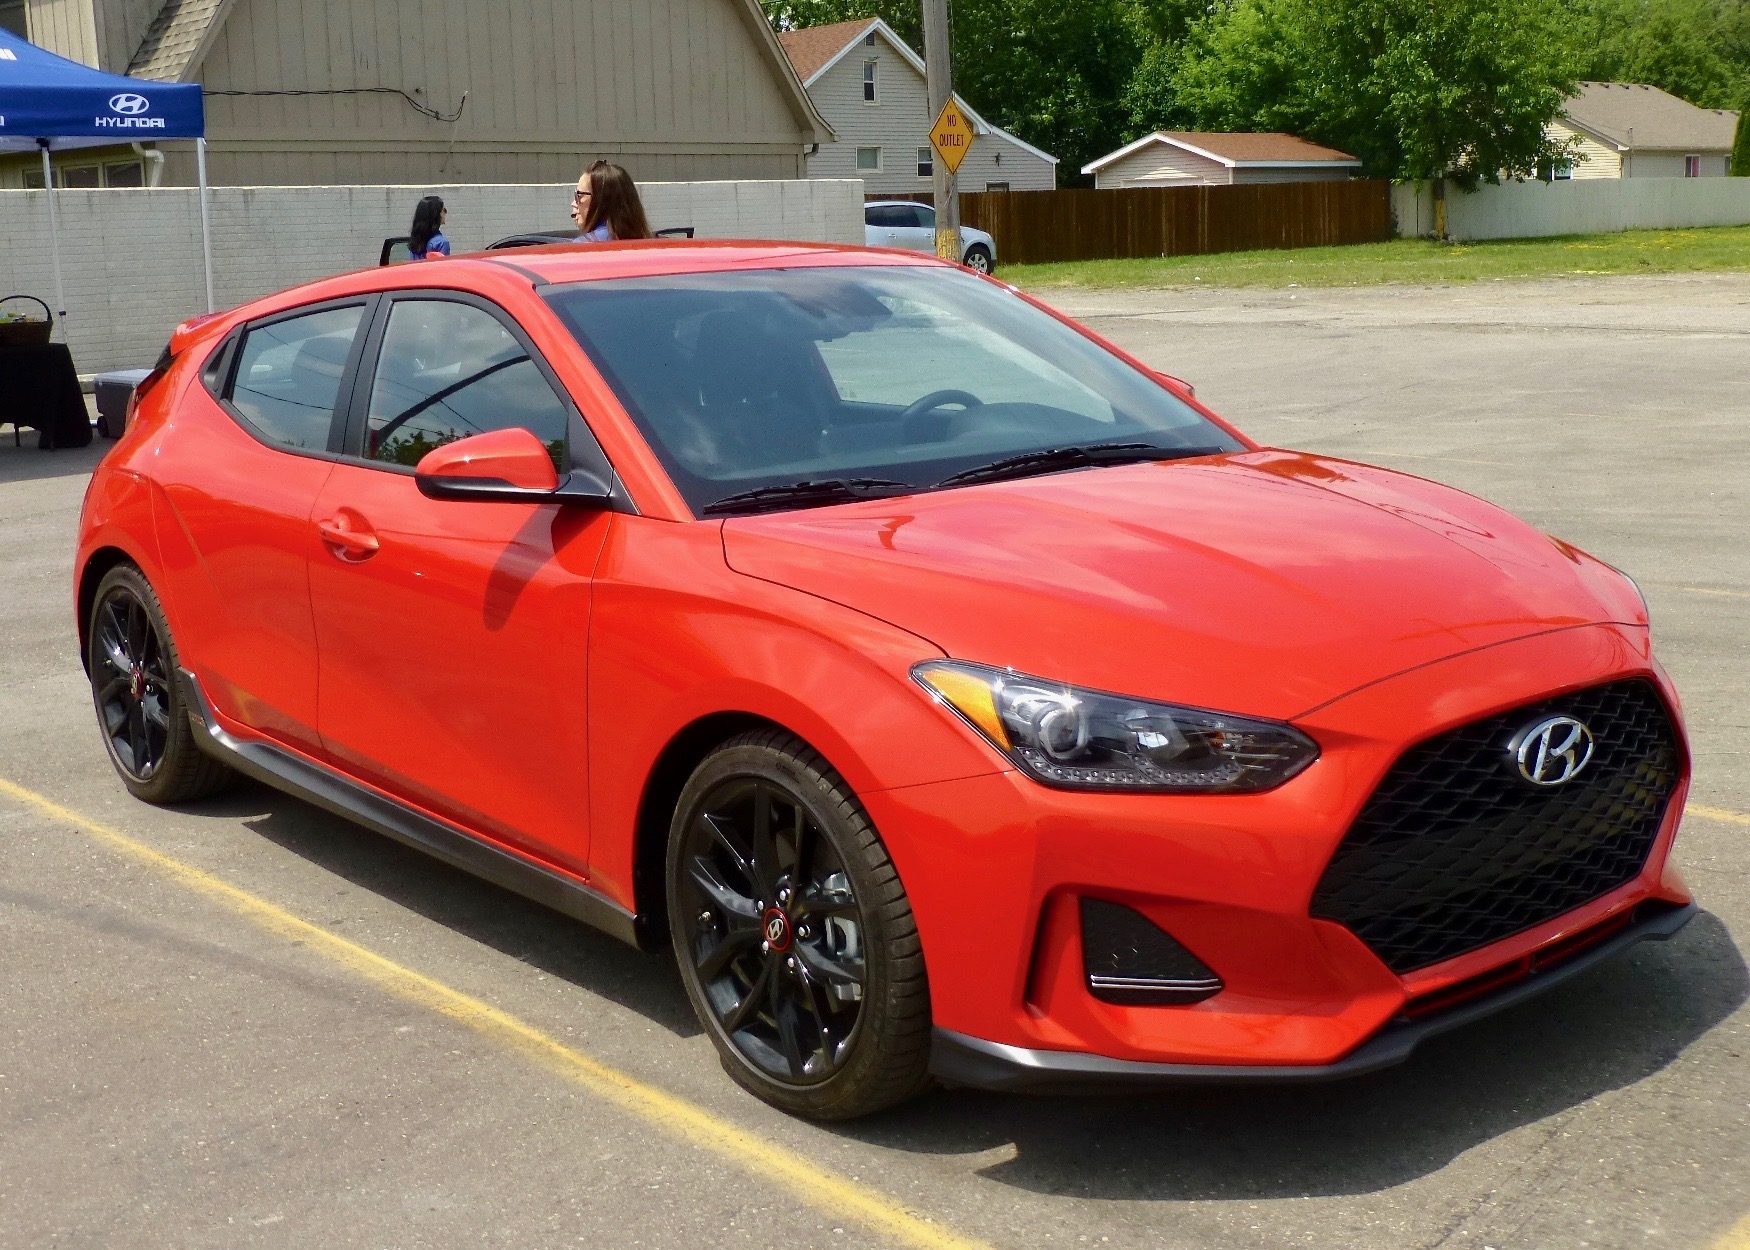 New 2019 Hyundai Veloster R-Spec is refined and adds performance features.